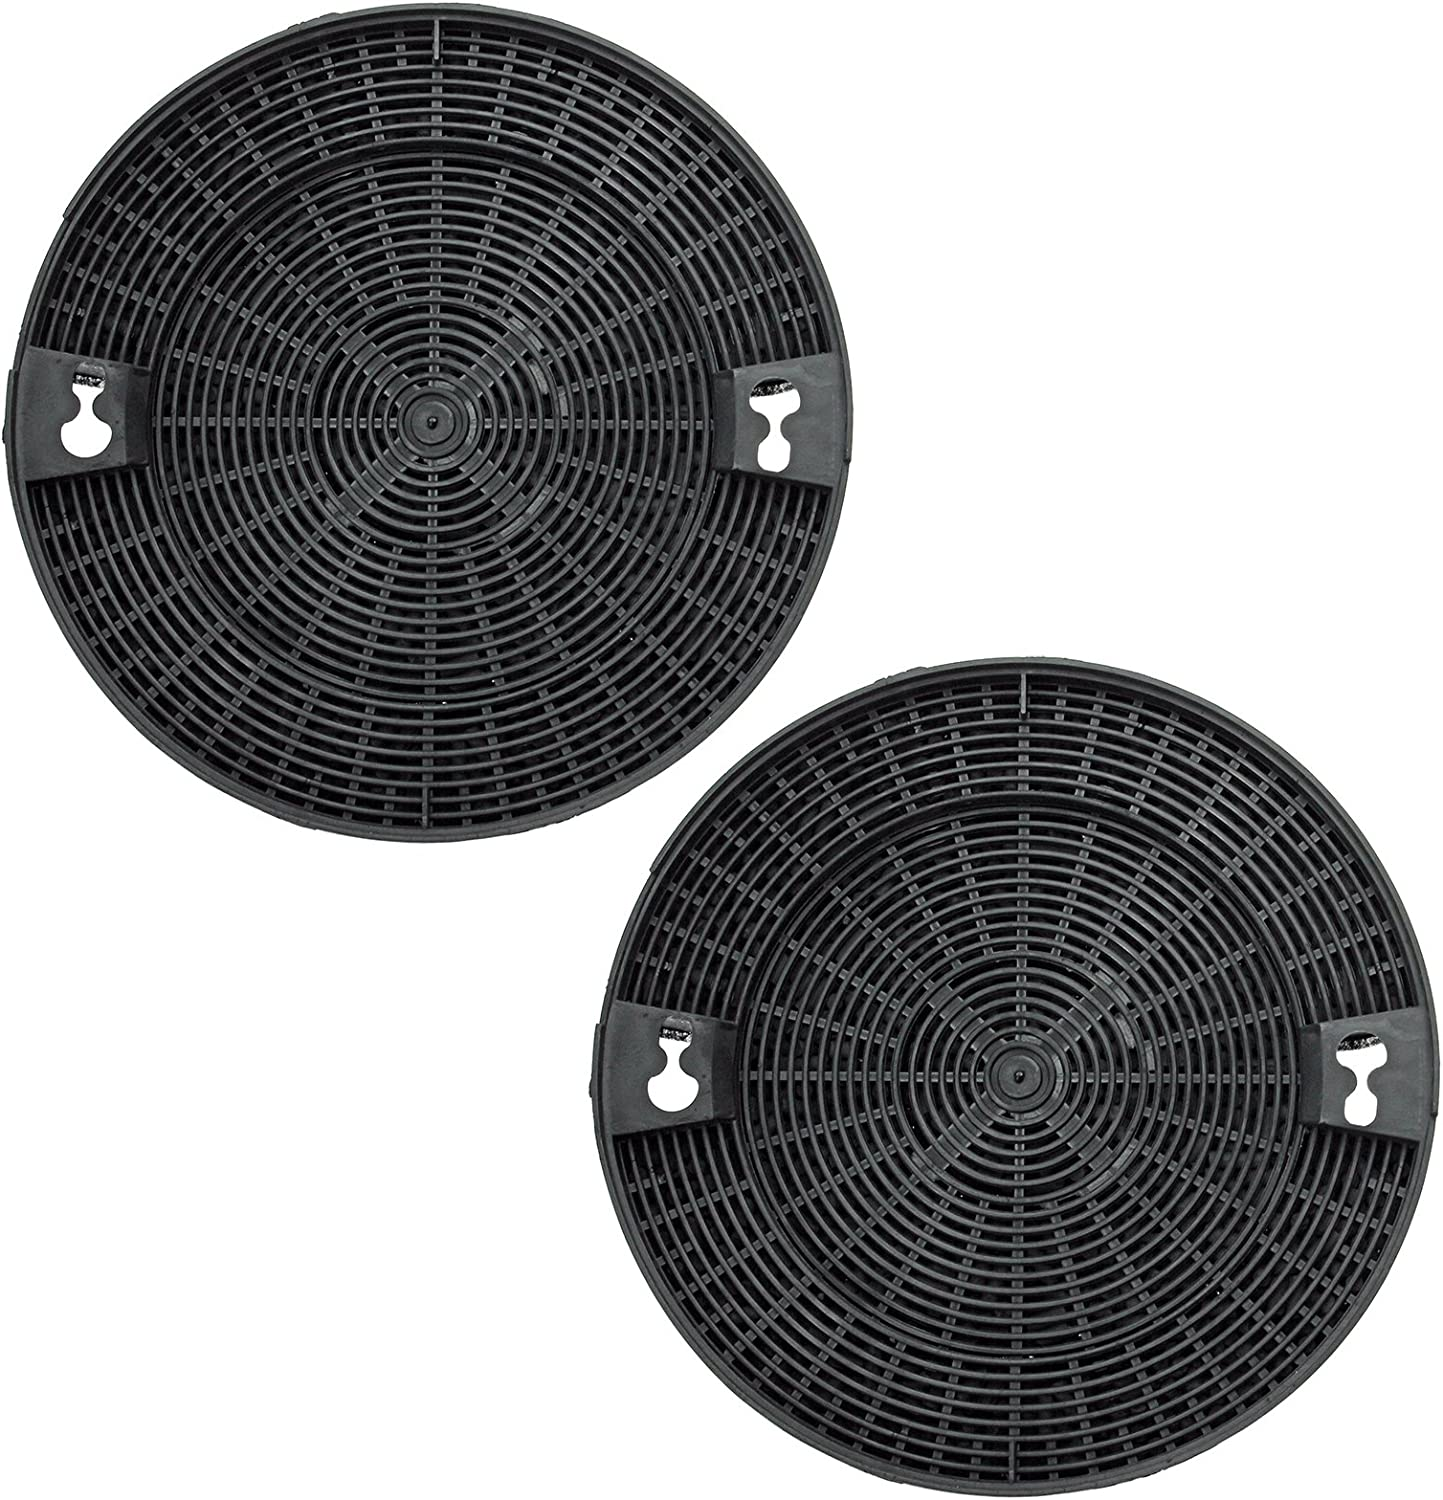 Ex-Pro® Carbon Vent Extractor Filter for IKEA Cooker Hood Pack of 4